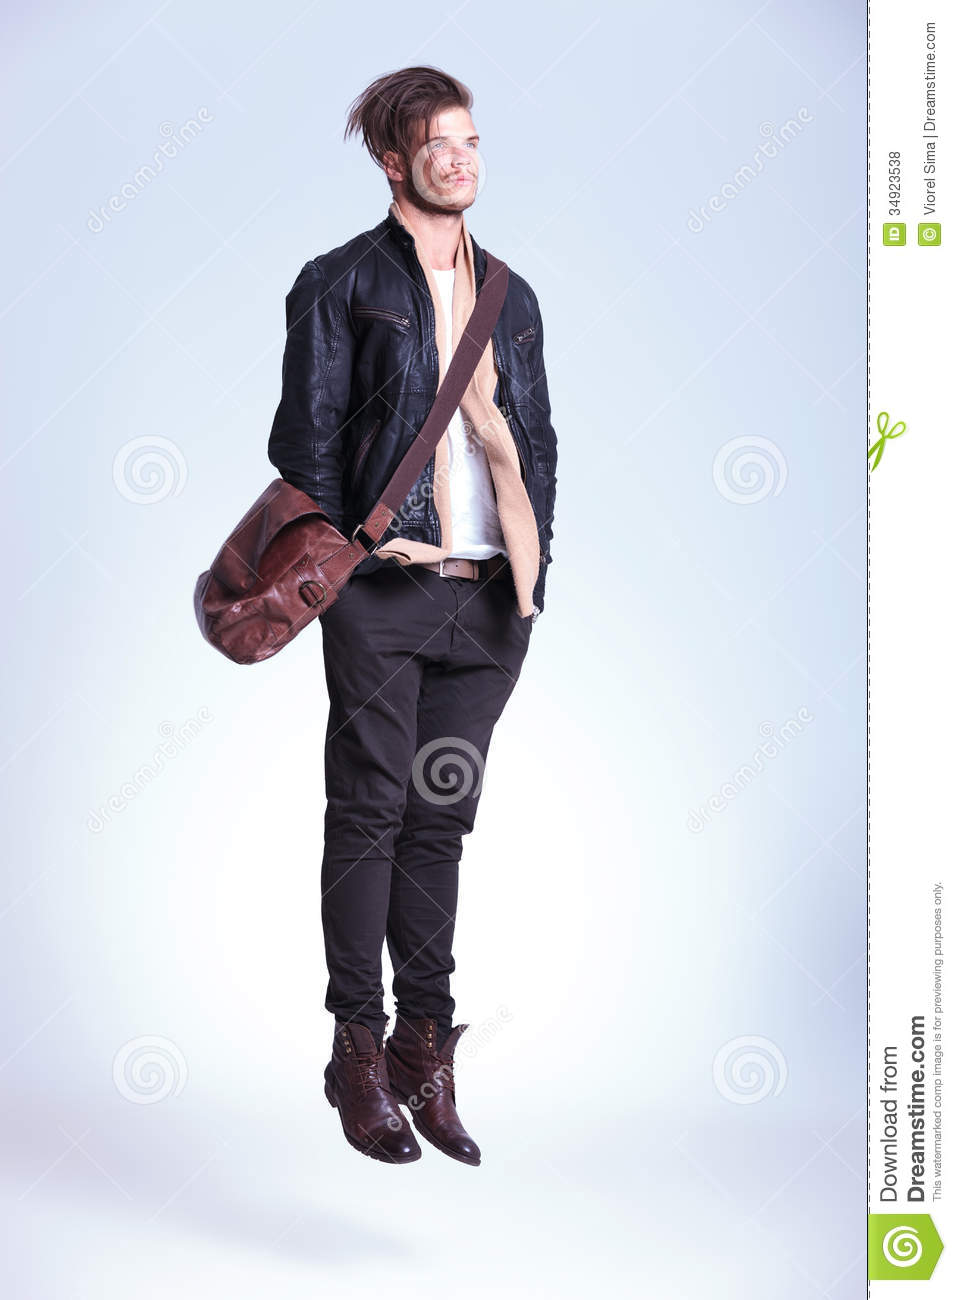 Fashion Man With Hands In Pockets Is Jumping Royalty Free